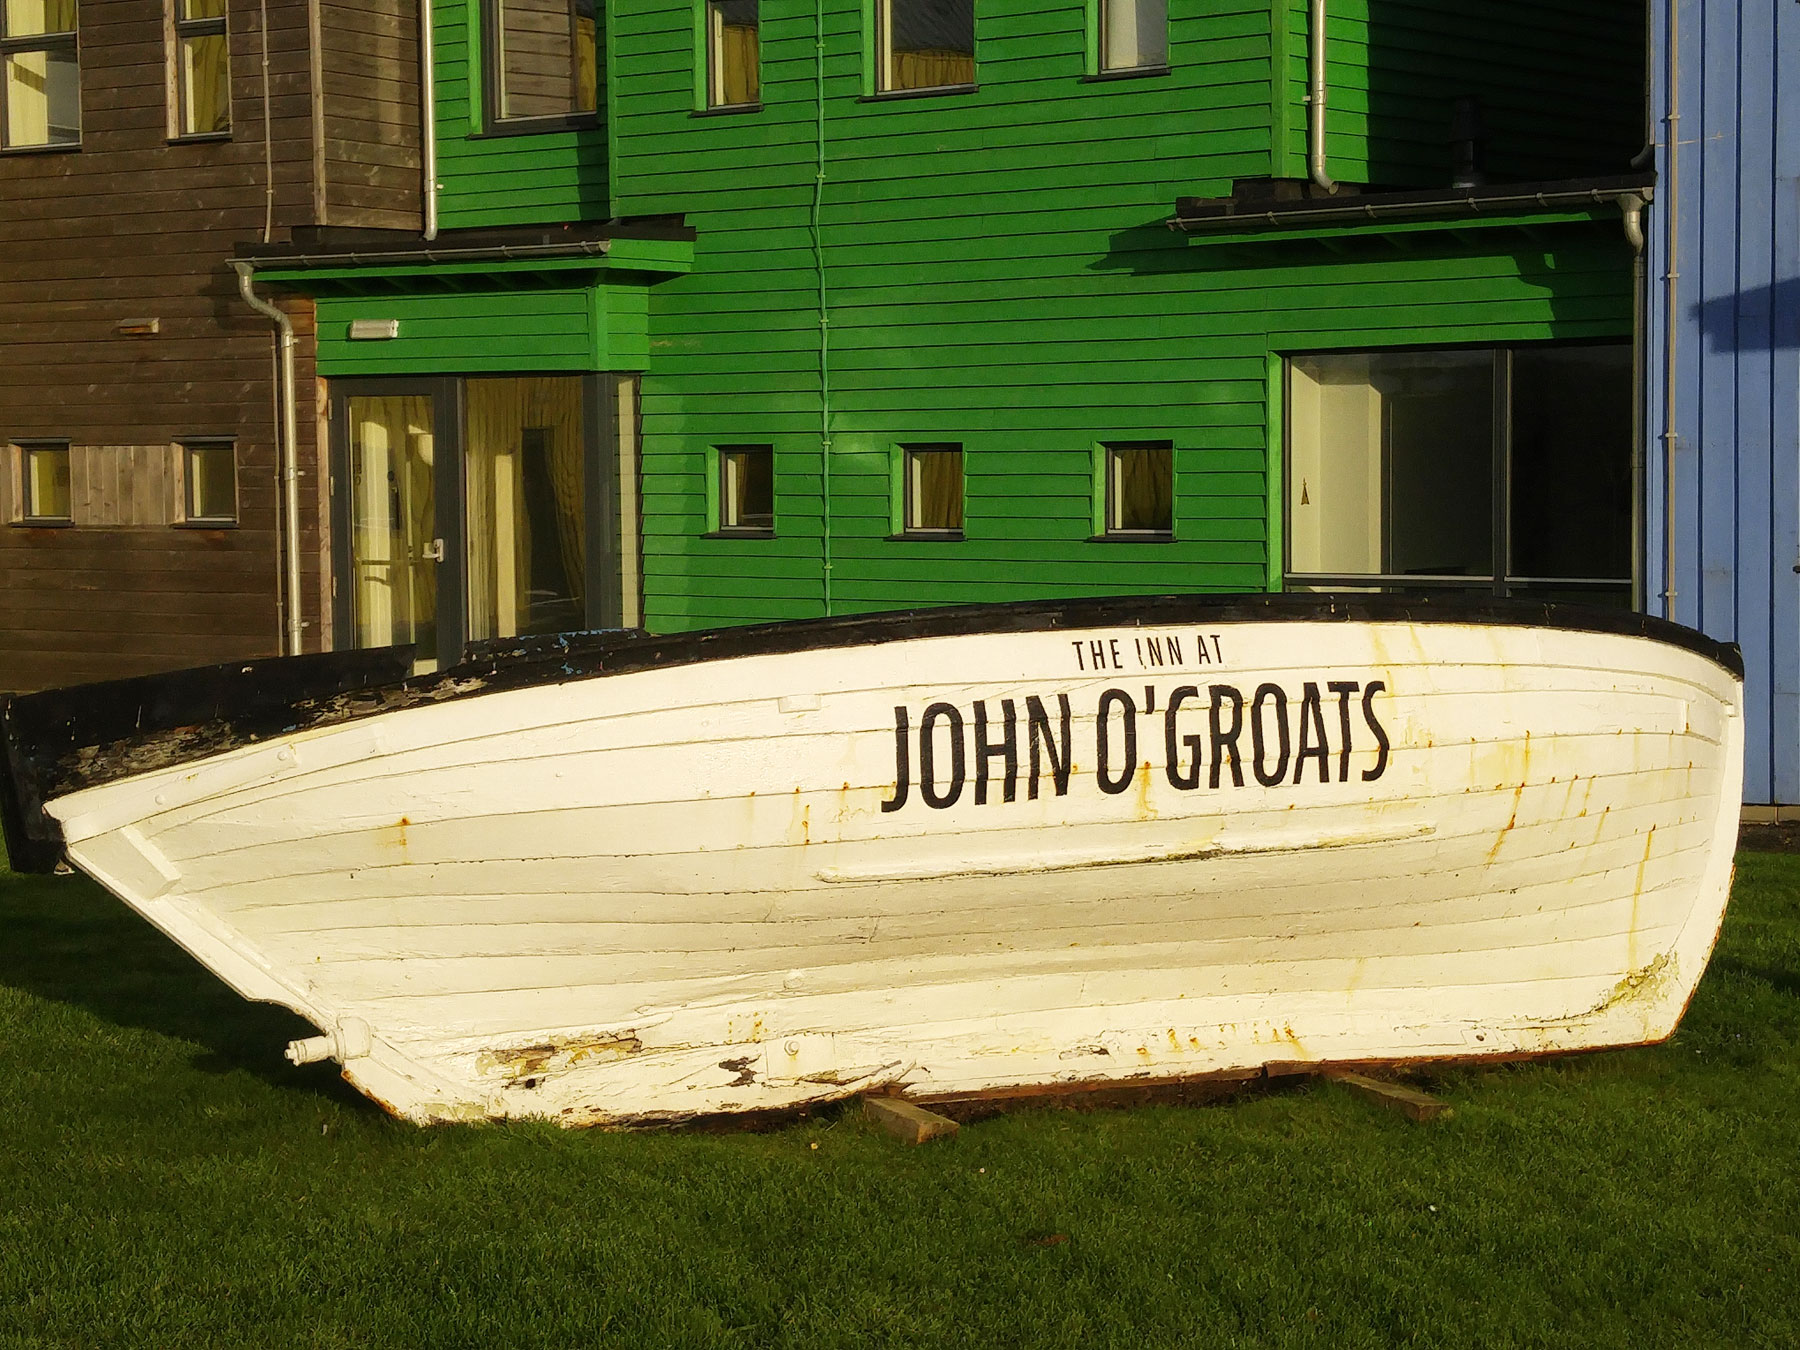 The-Inn-at-Jon-o-groats